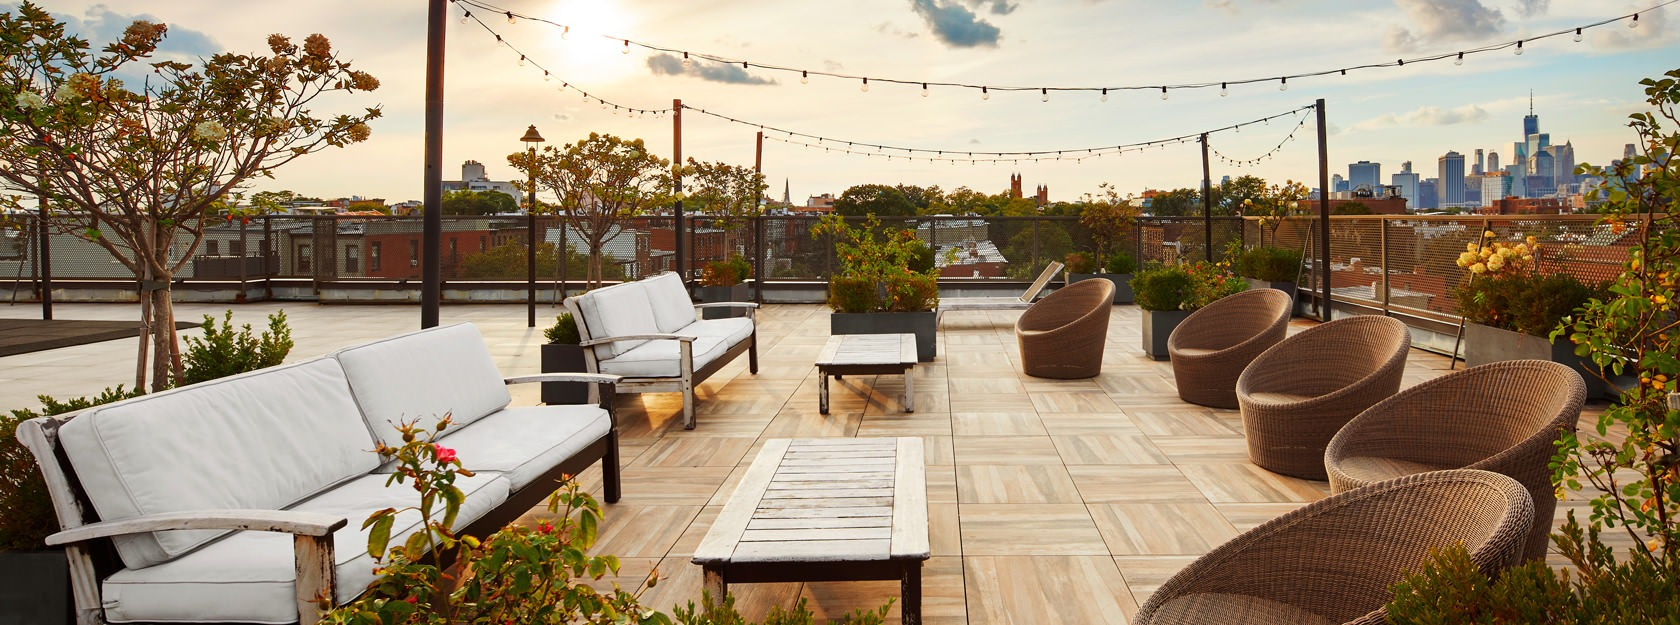 rooftop terrace with stringed lighting and seating areas